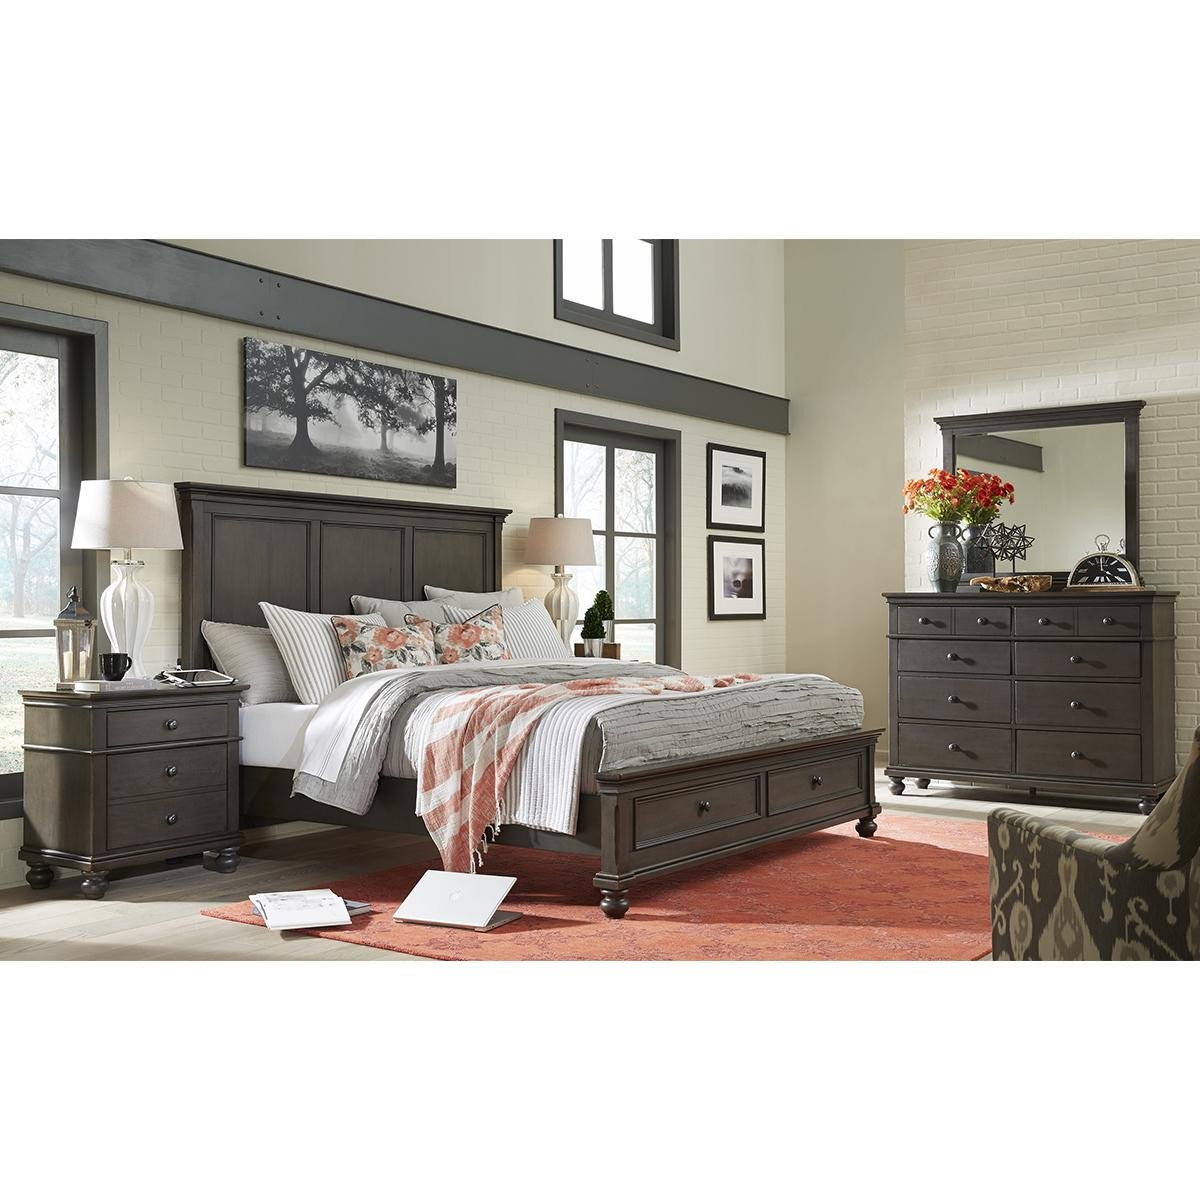 Cheap Bedroom Dresser Set Awesome Riva Ridge Oxford 4 Piece Queen Bedroom Set In Peppercorn